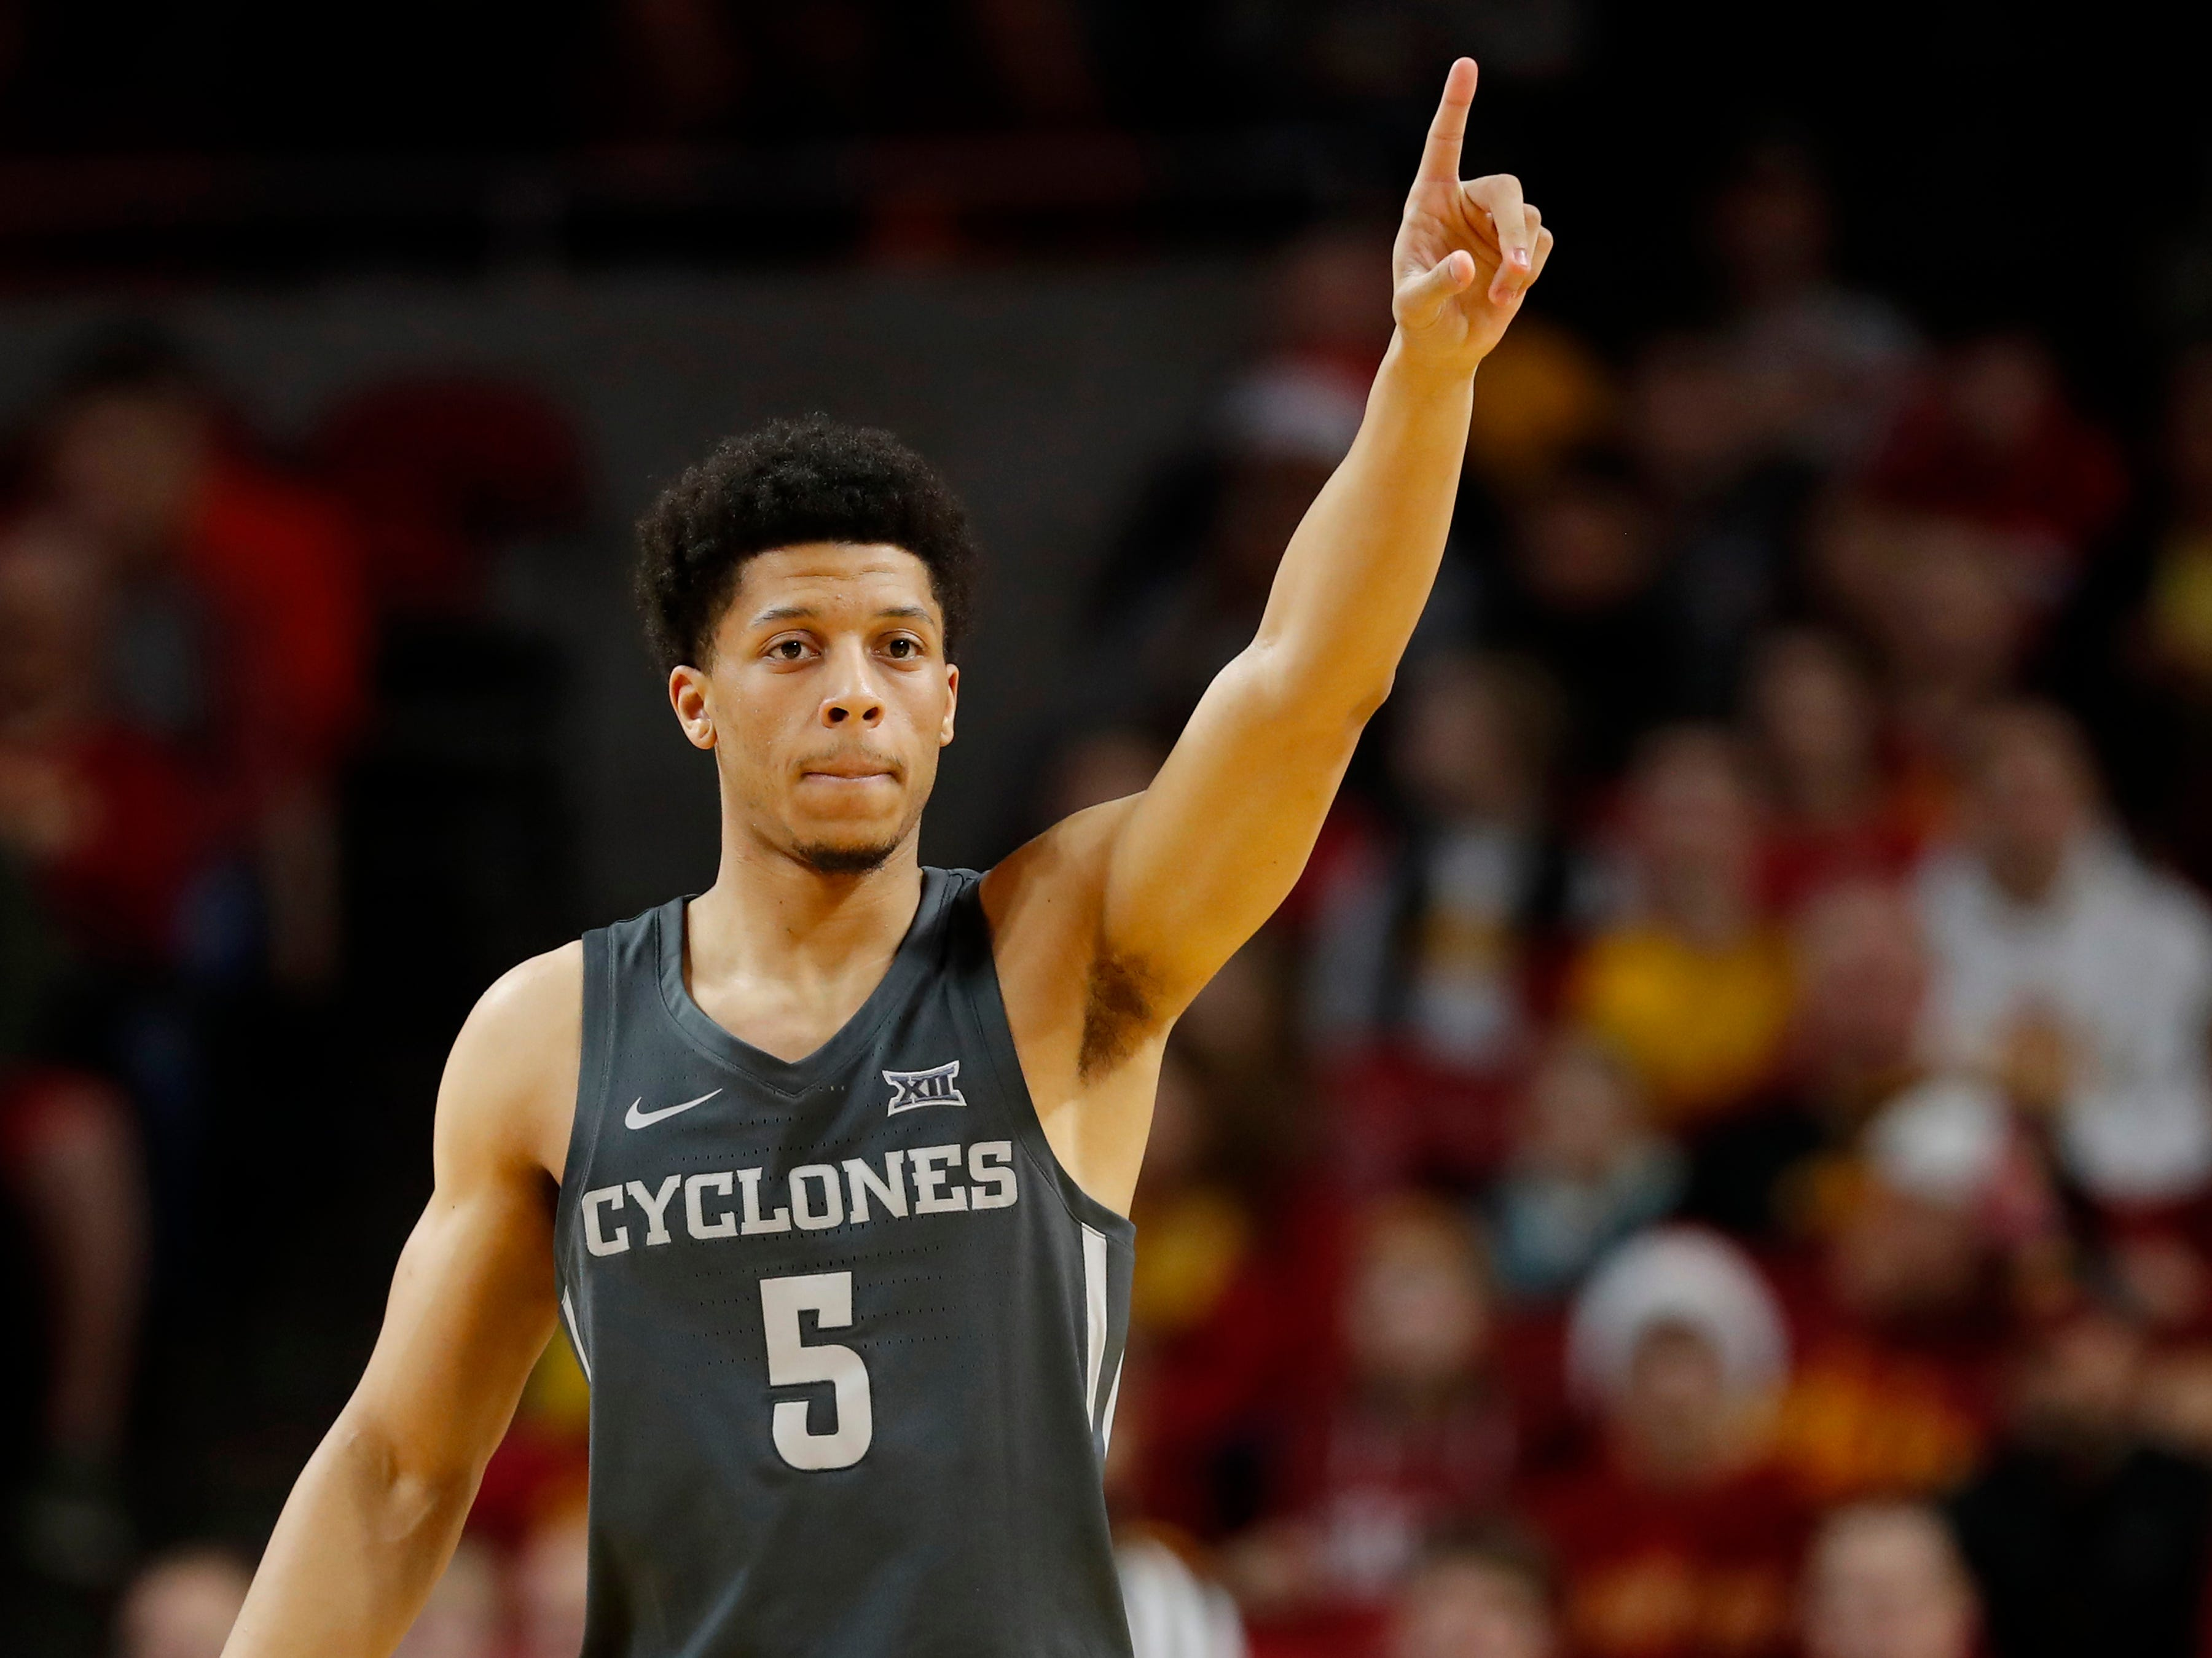 Iowa State guard Lindell Wigginton reacts after a basket during the first half of an NCAA college basketball game against Eastern Illinois, Friday, Dec. 21, 2018, in Ames, Iowa.